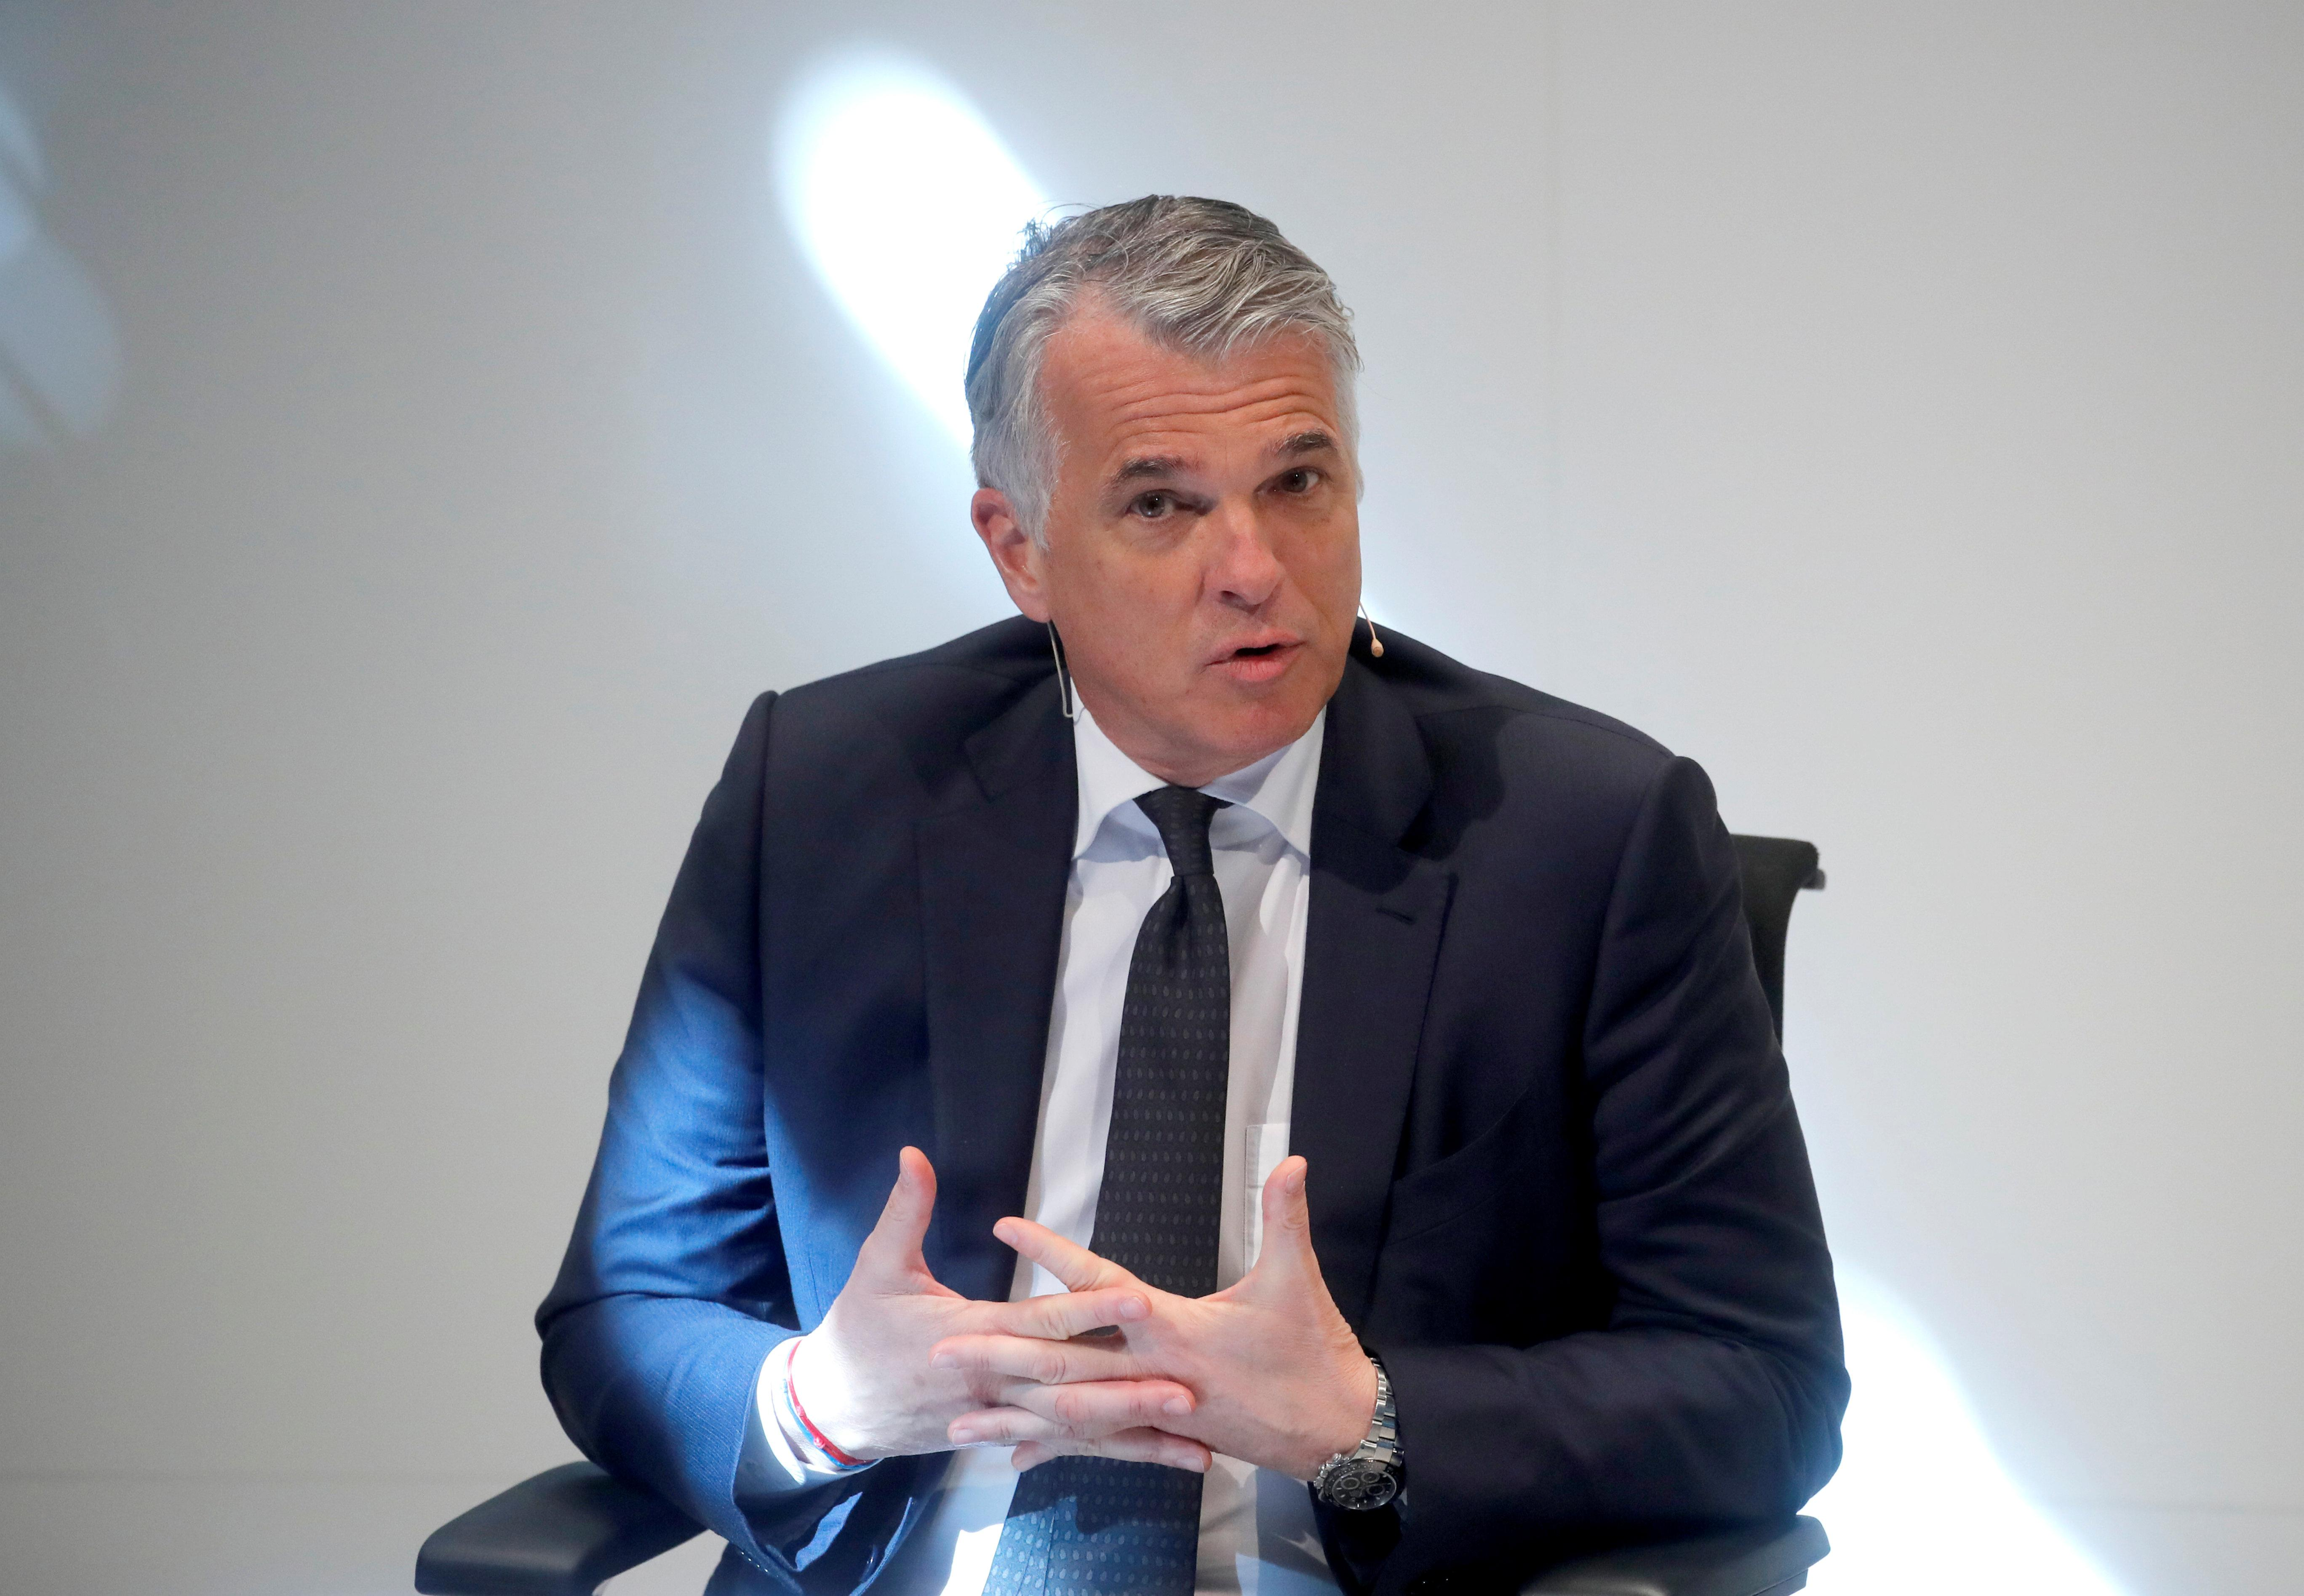 UBS CEO's pay slips to $1 million a month as Swiss bank's top bosses pocket $113 million